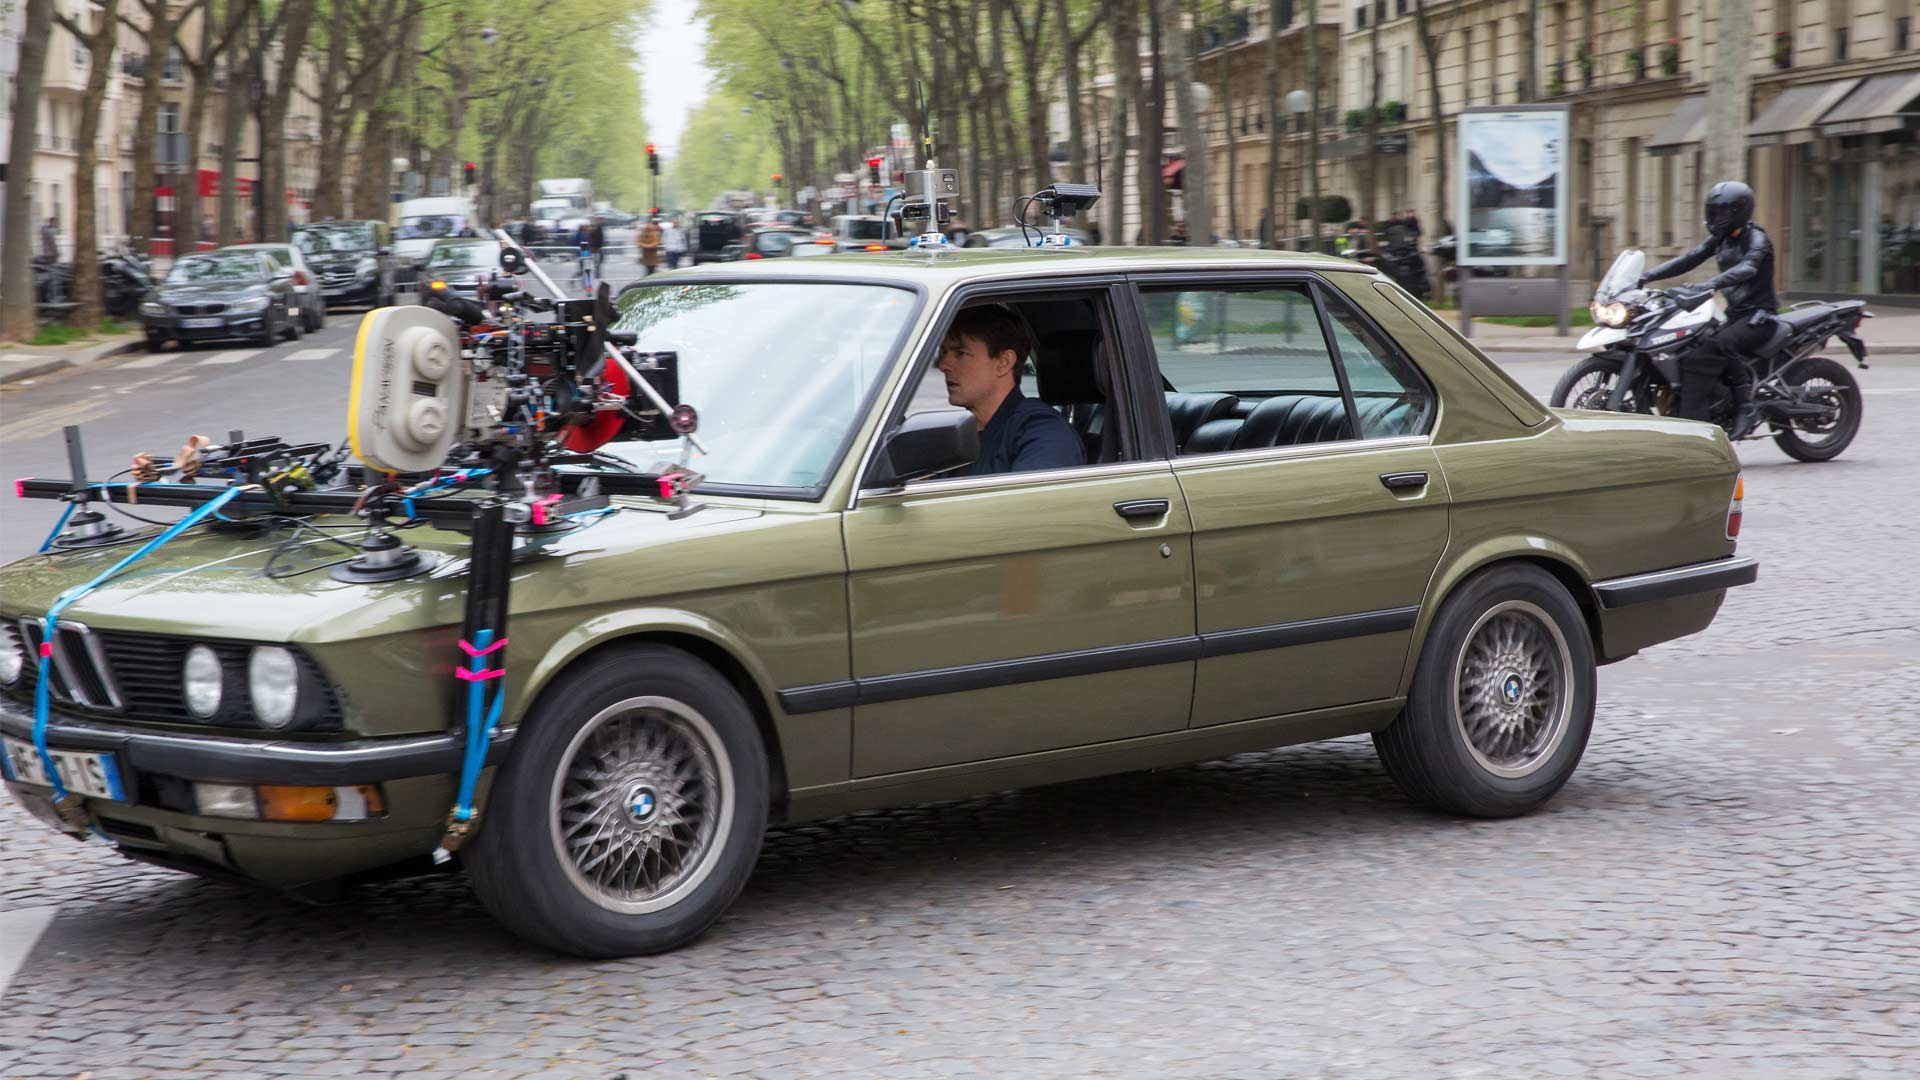 1986-BMW-5-Series-Tom-Cruise-Mission-Impossible-Fallout